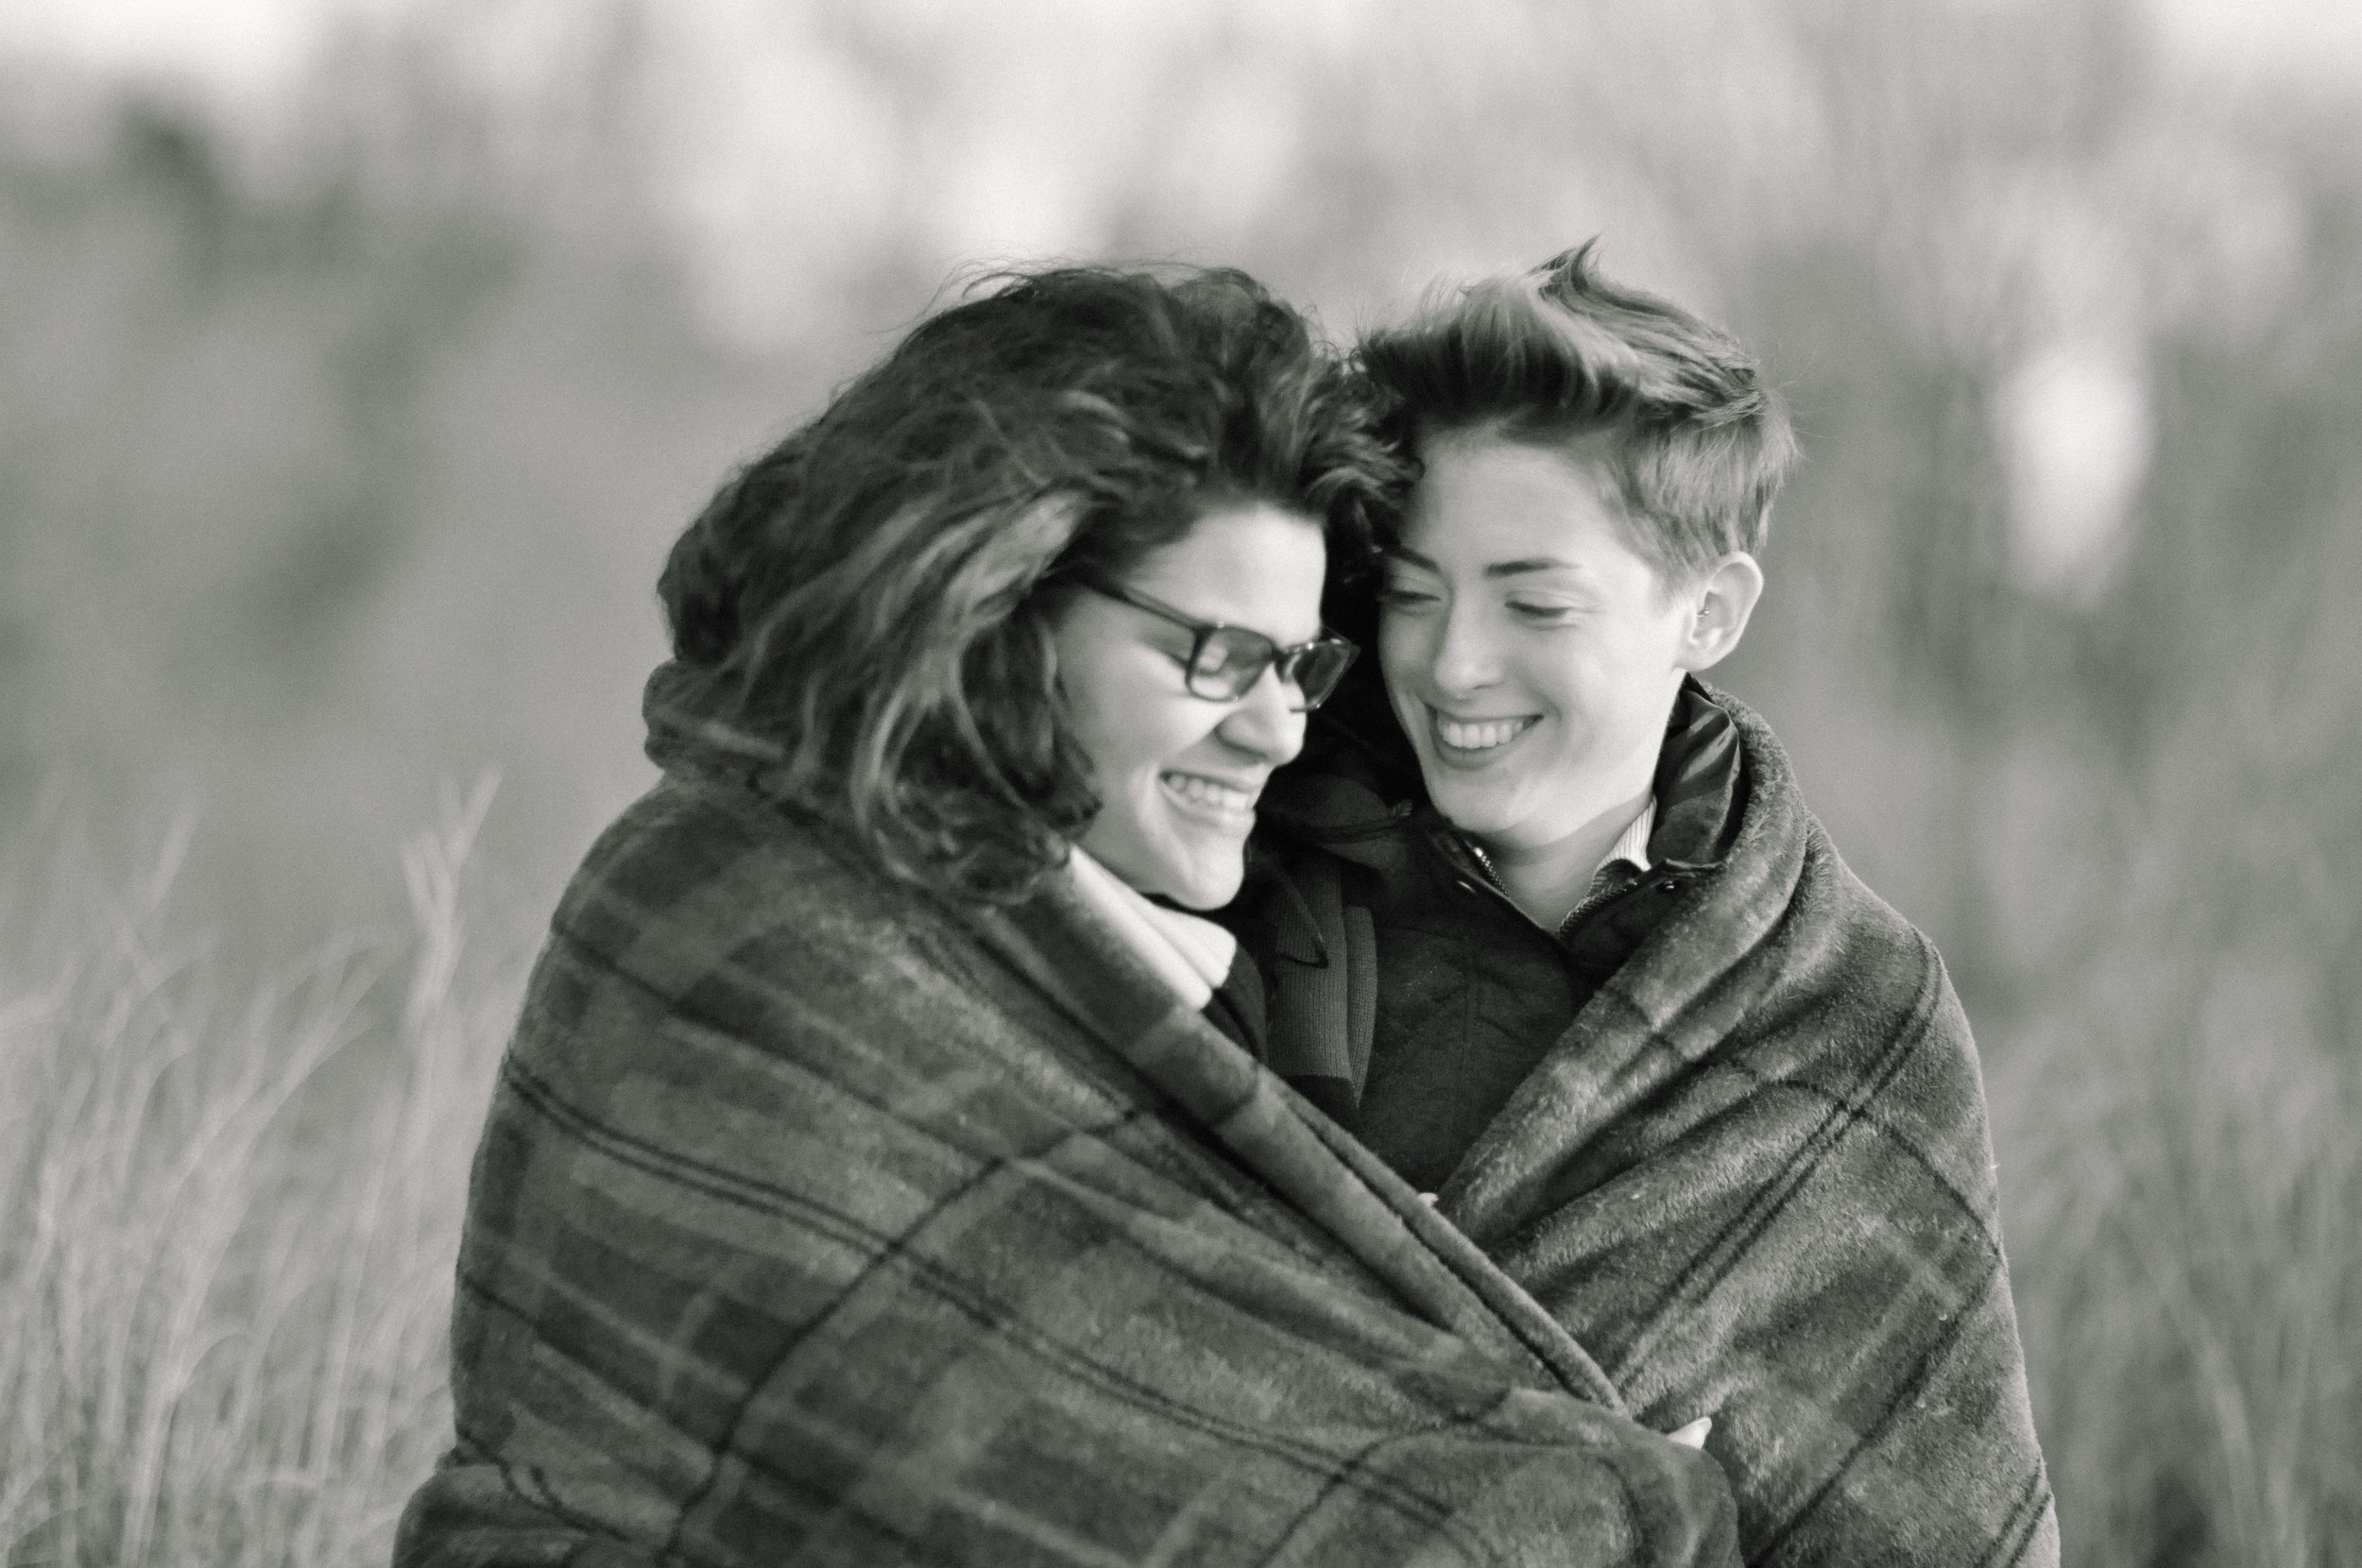 winter-engagement-photos-jefferson-patterson-park snug.jpg